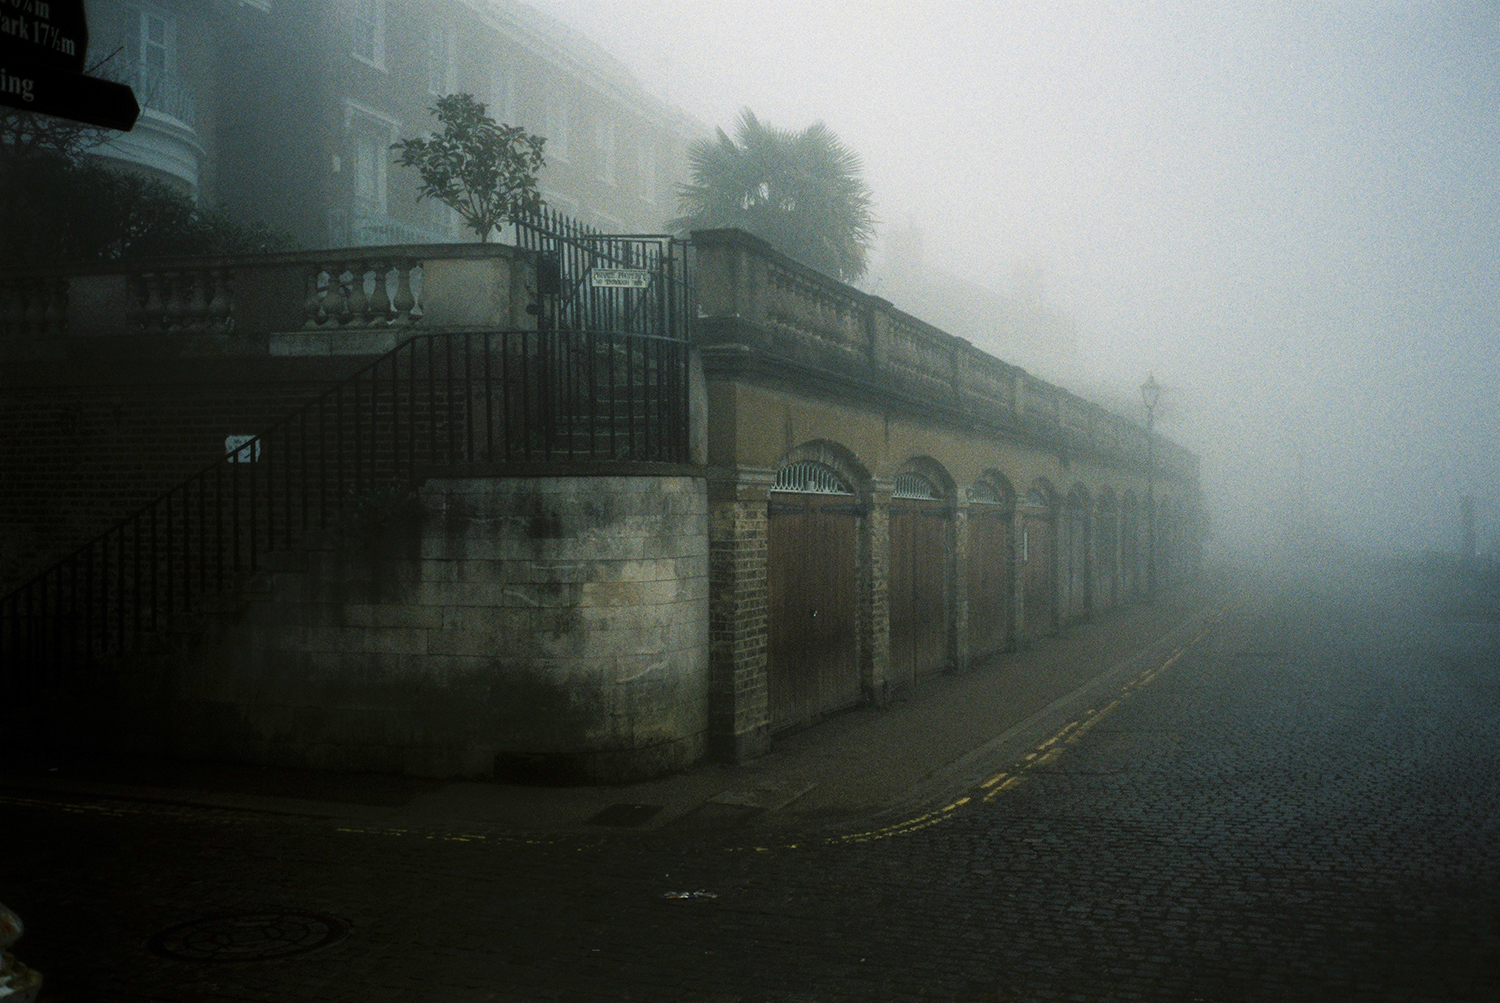 London's Richmond photographed on foggy morning. Taken with a Olympus MjuII camera and Fuji 400H film. By Dmitry Serostanov.